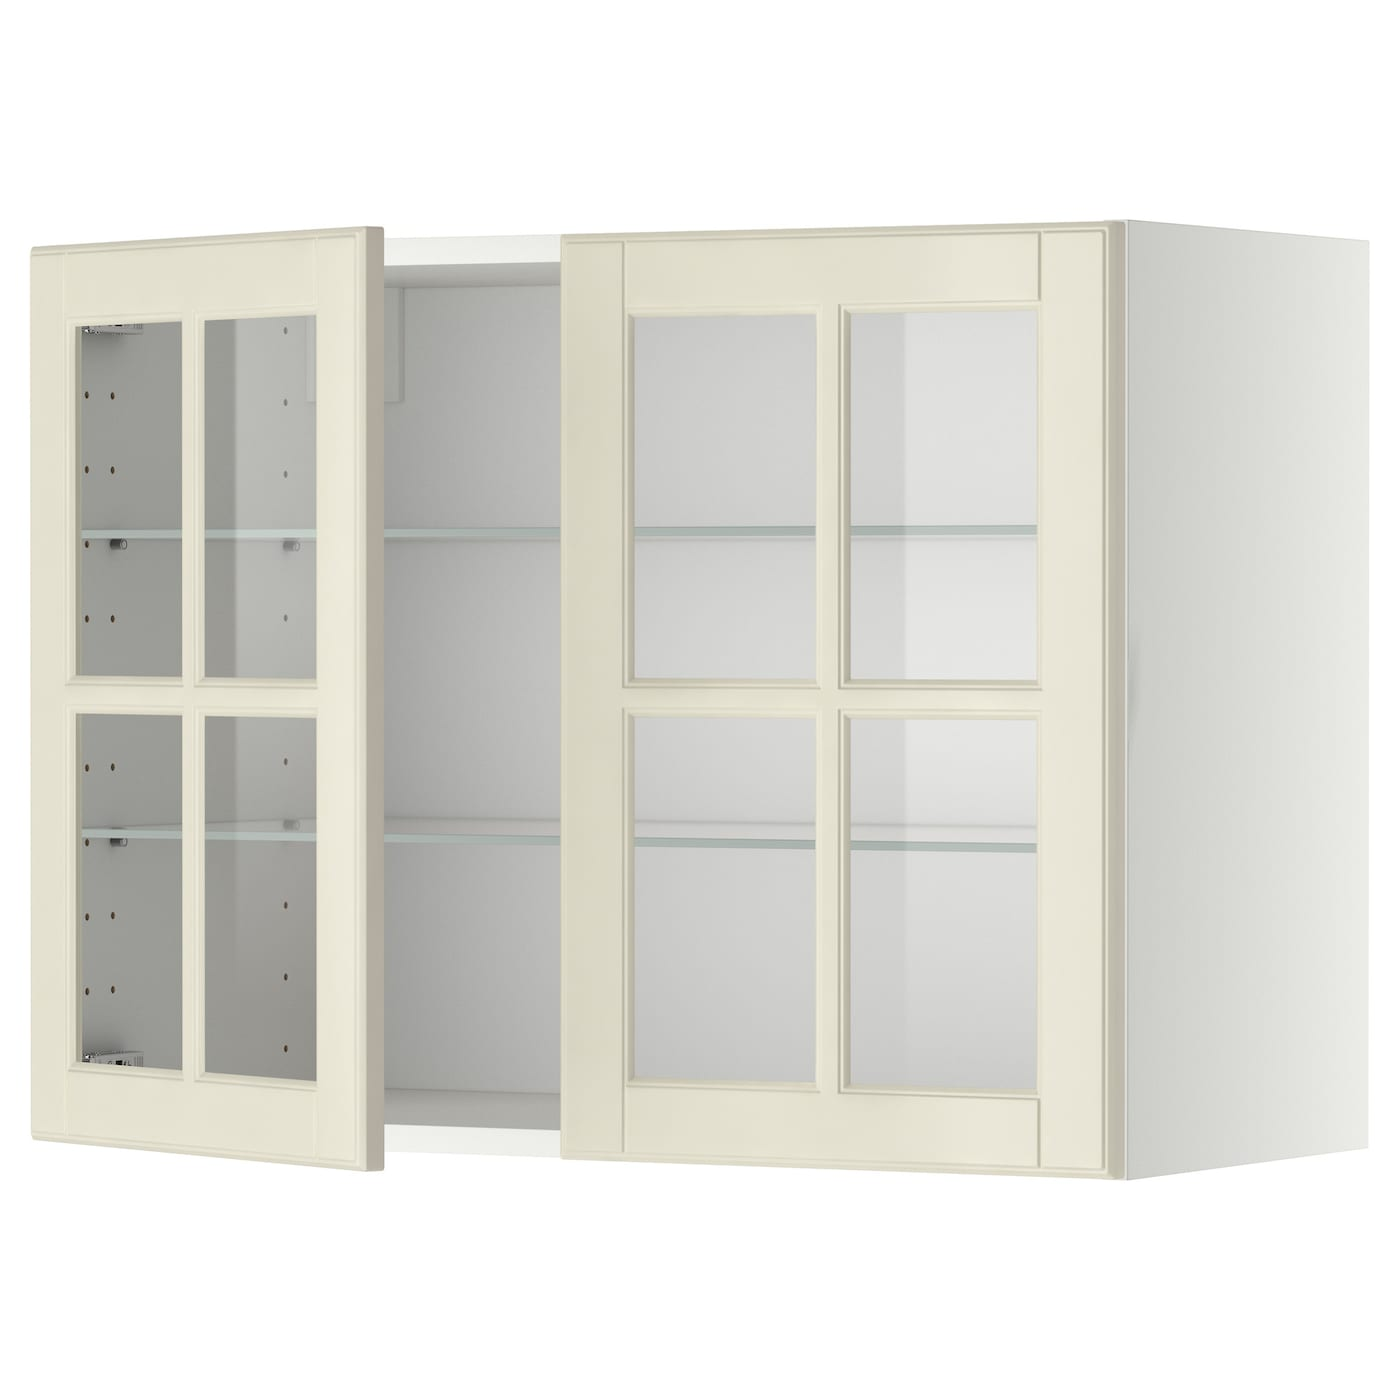 Wall Cabinet W Shelves 2 Glass Drs Metod White Bodbyn Off White